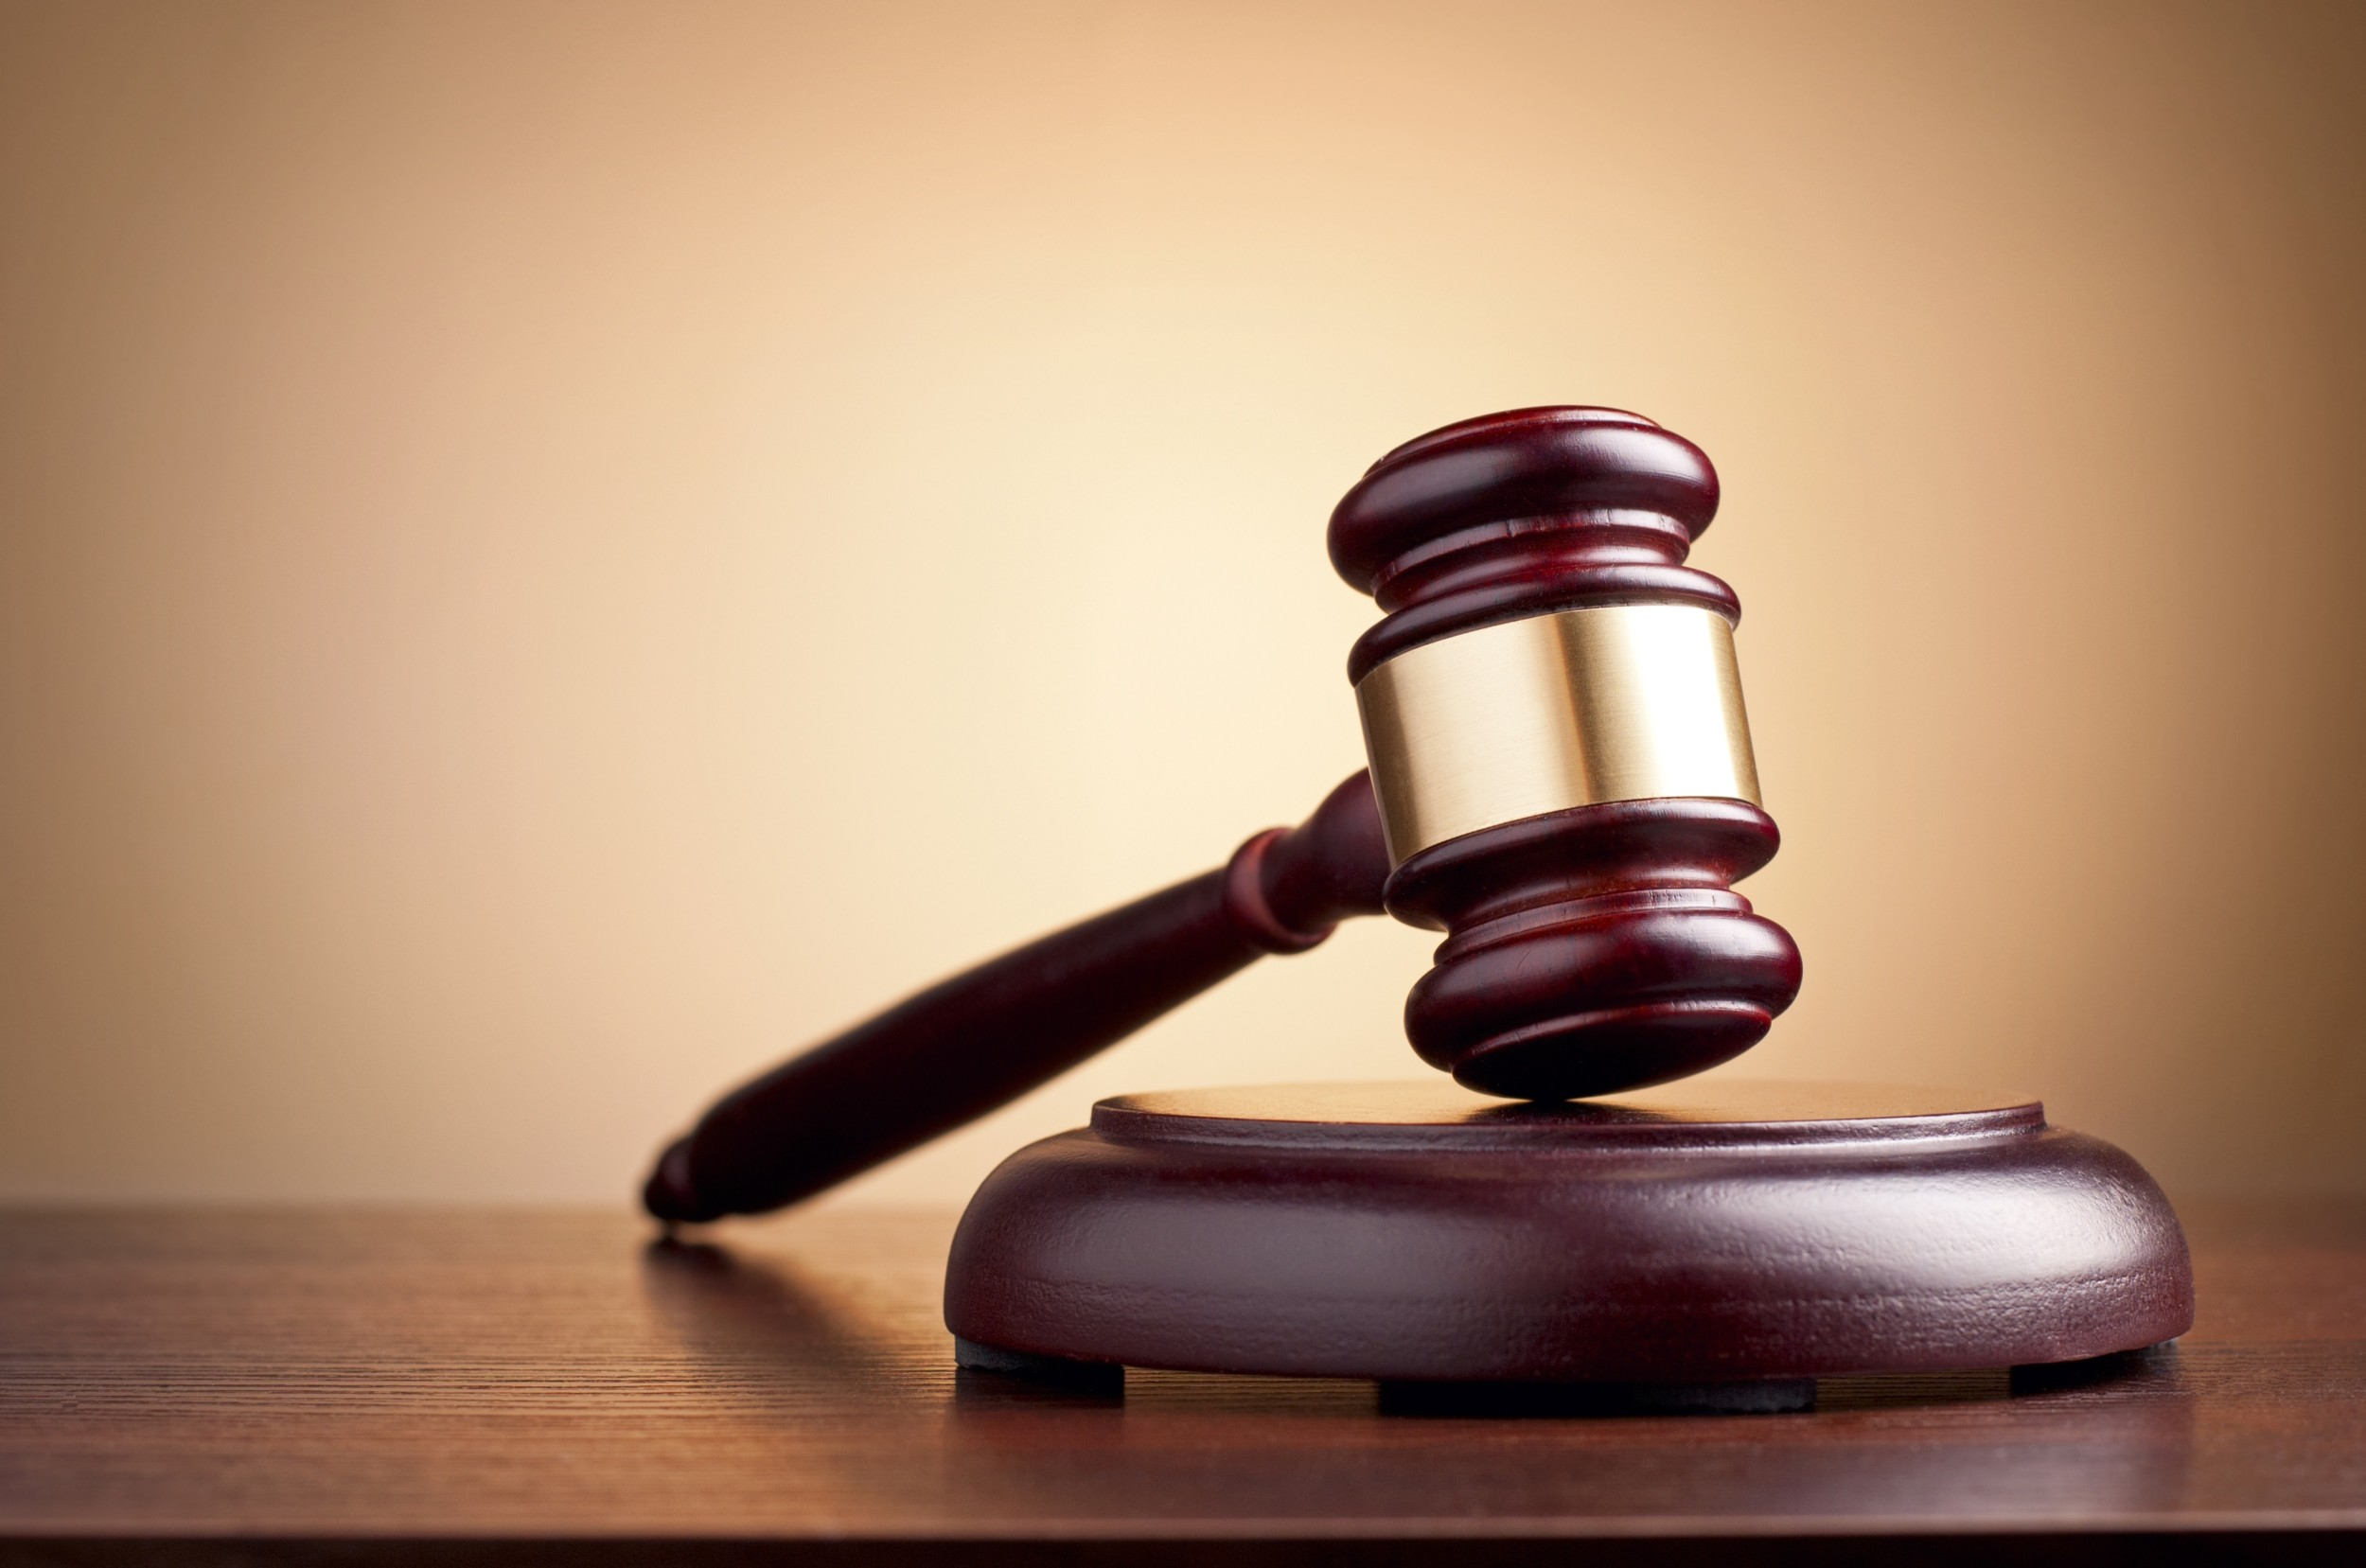 Settlement Of Personal Injury Cases Without Going To Trial